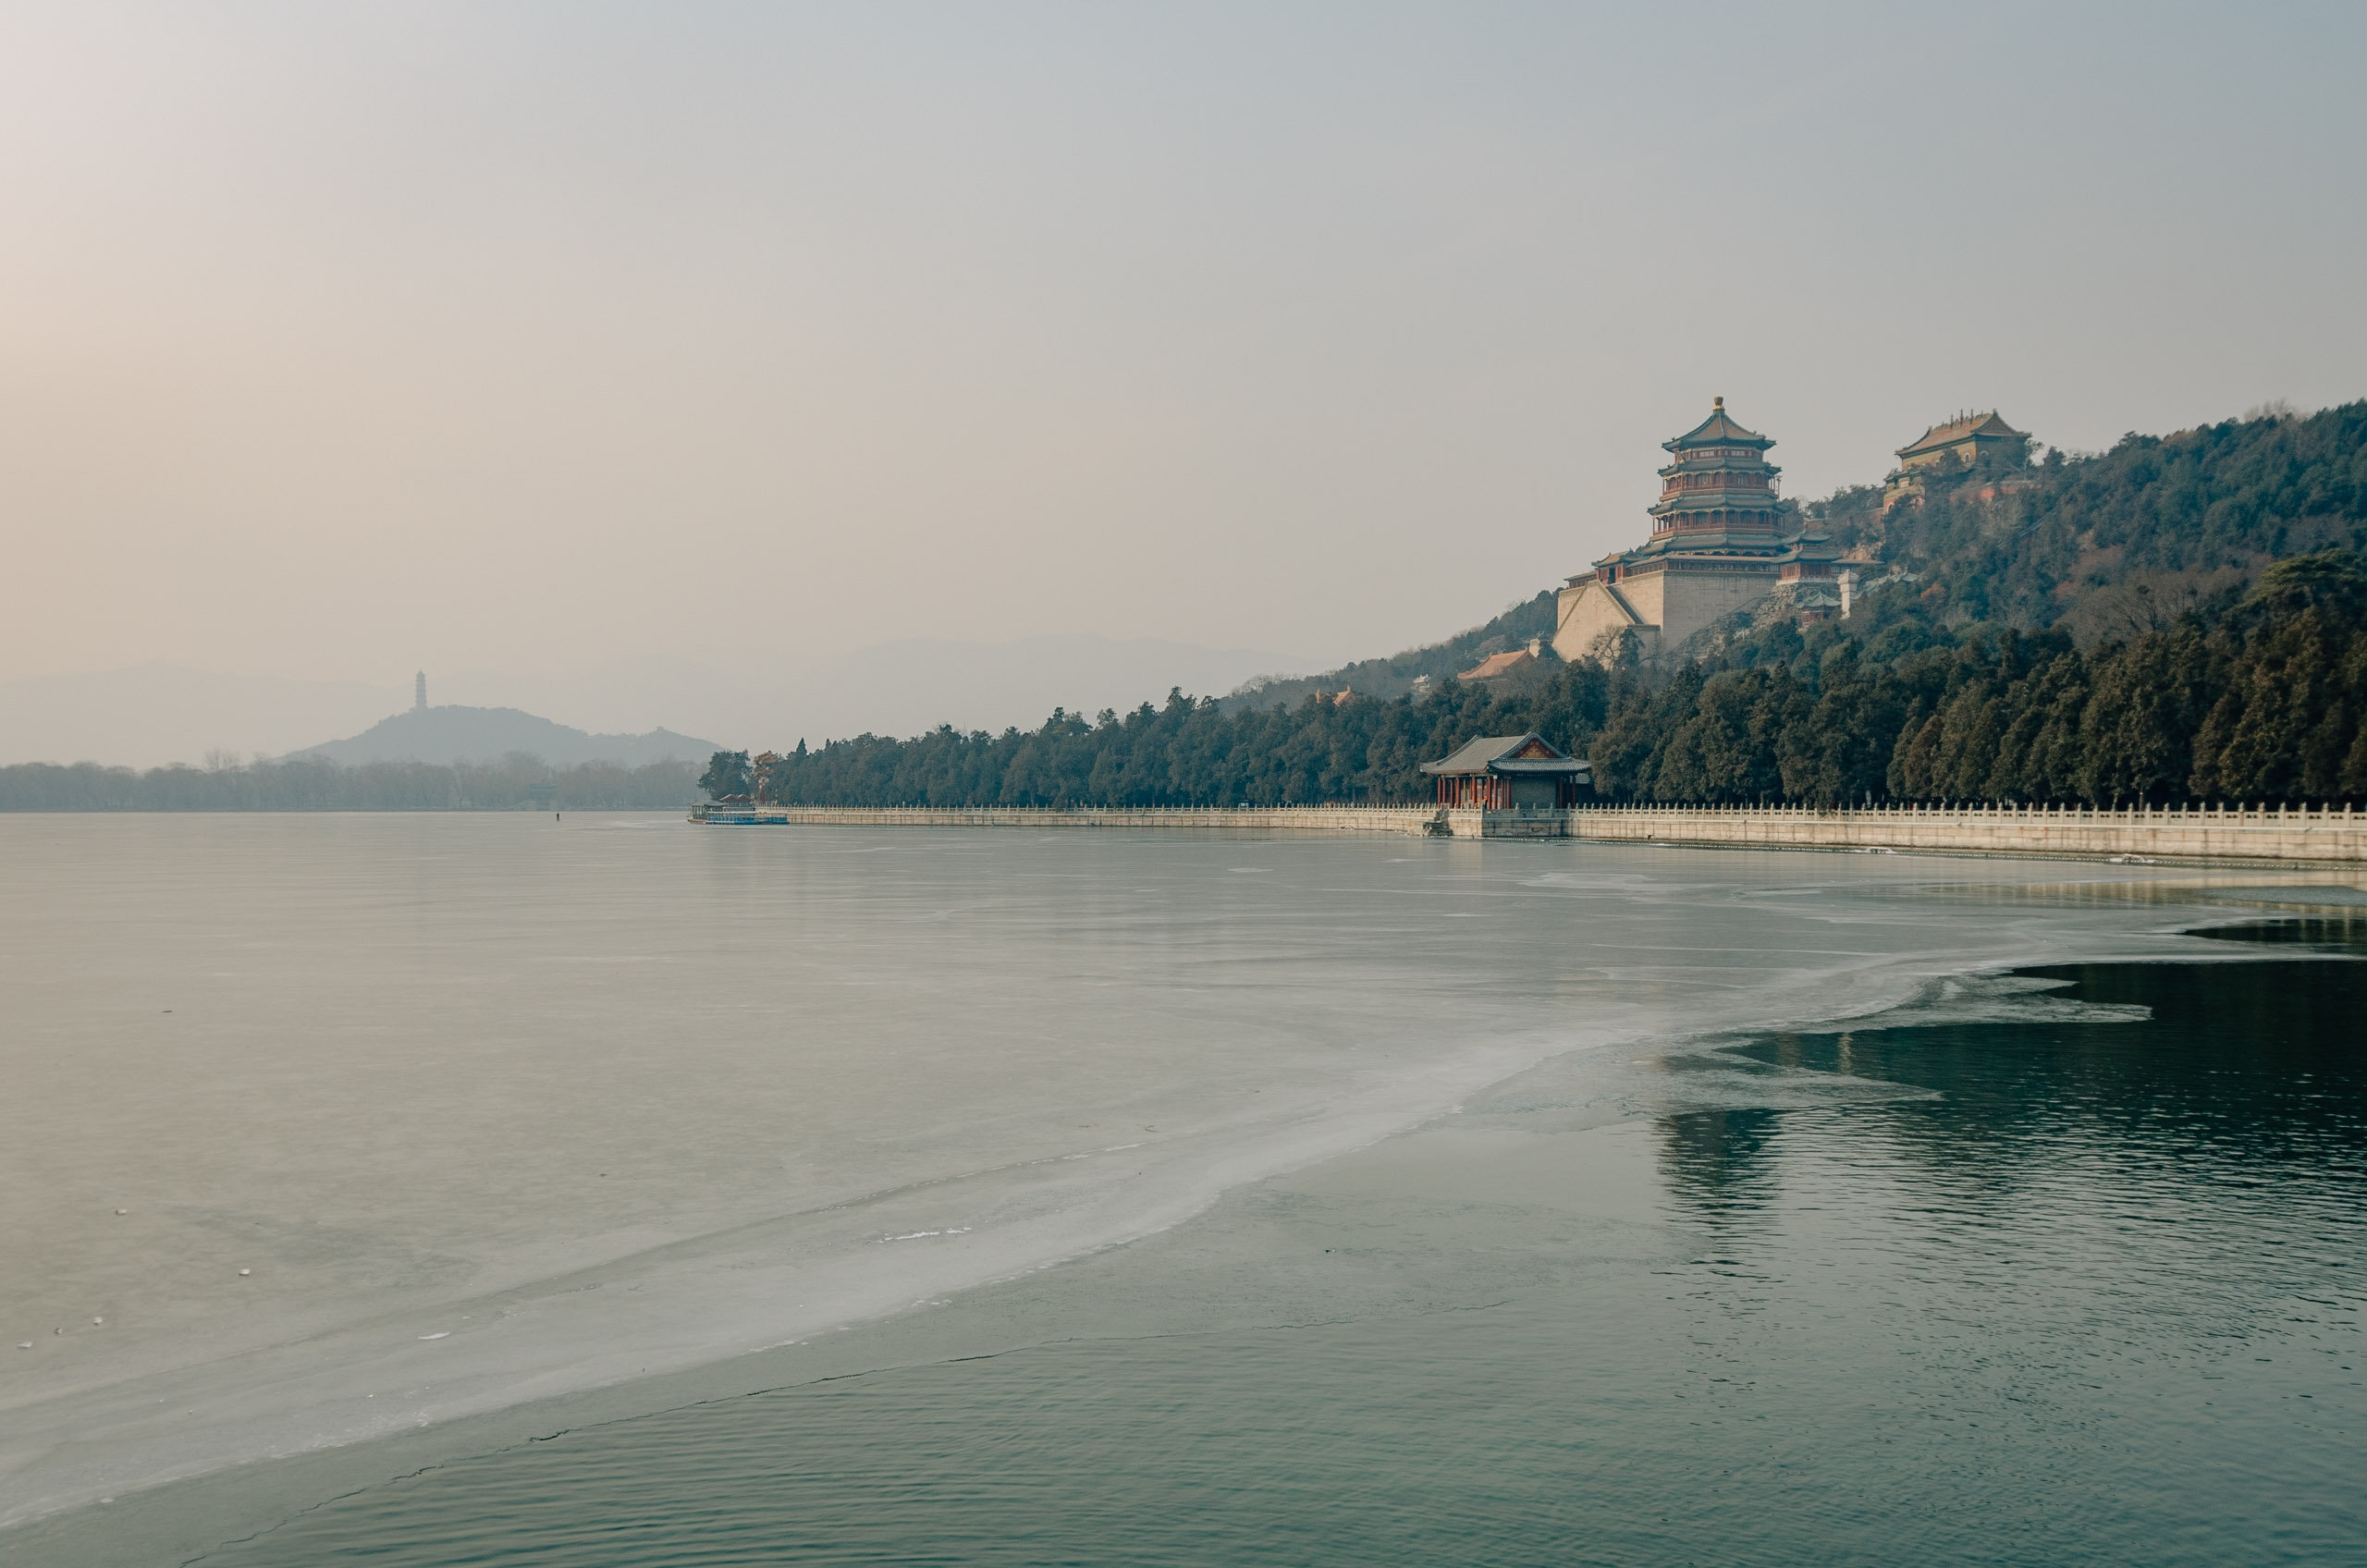 Overlooking the Summer Palace